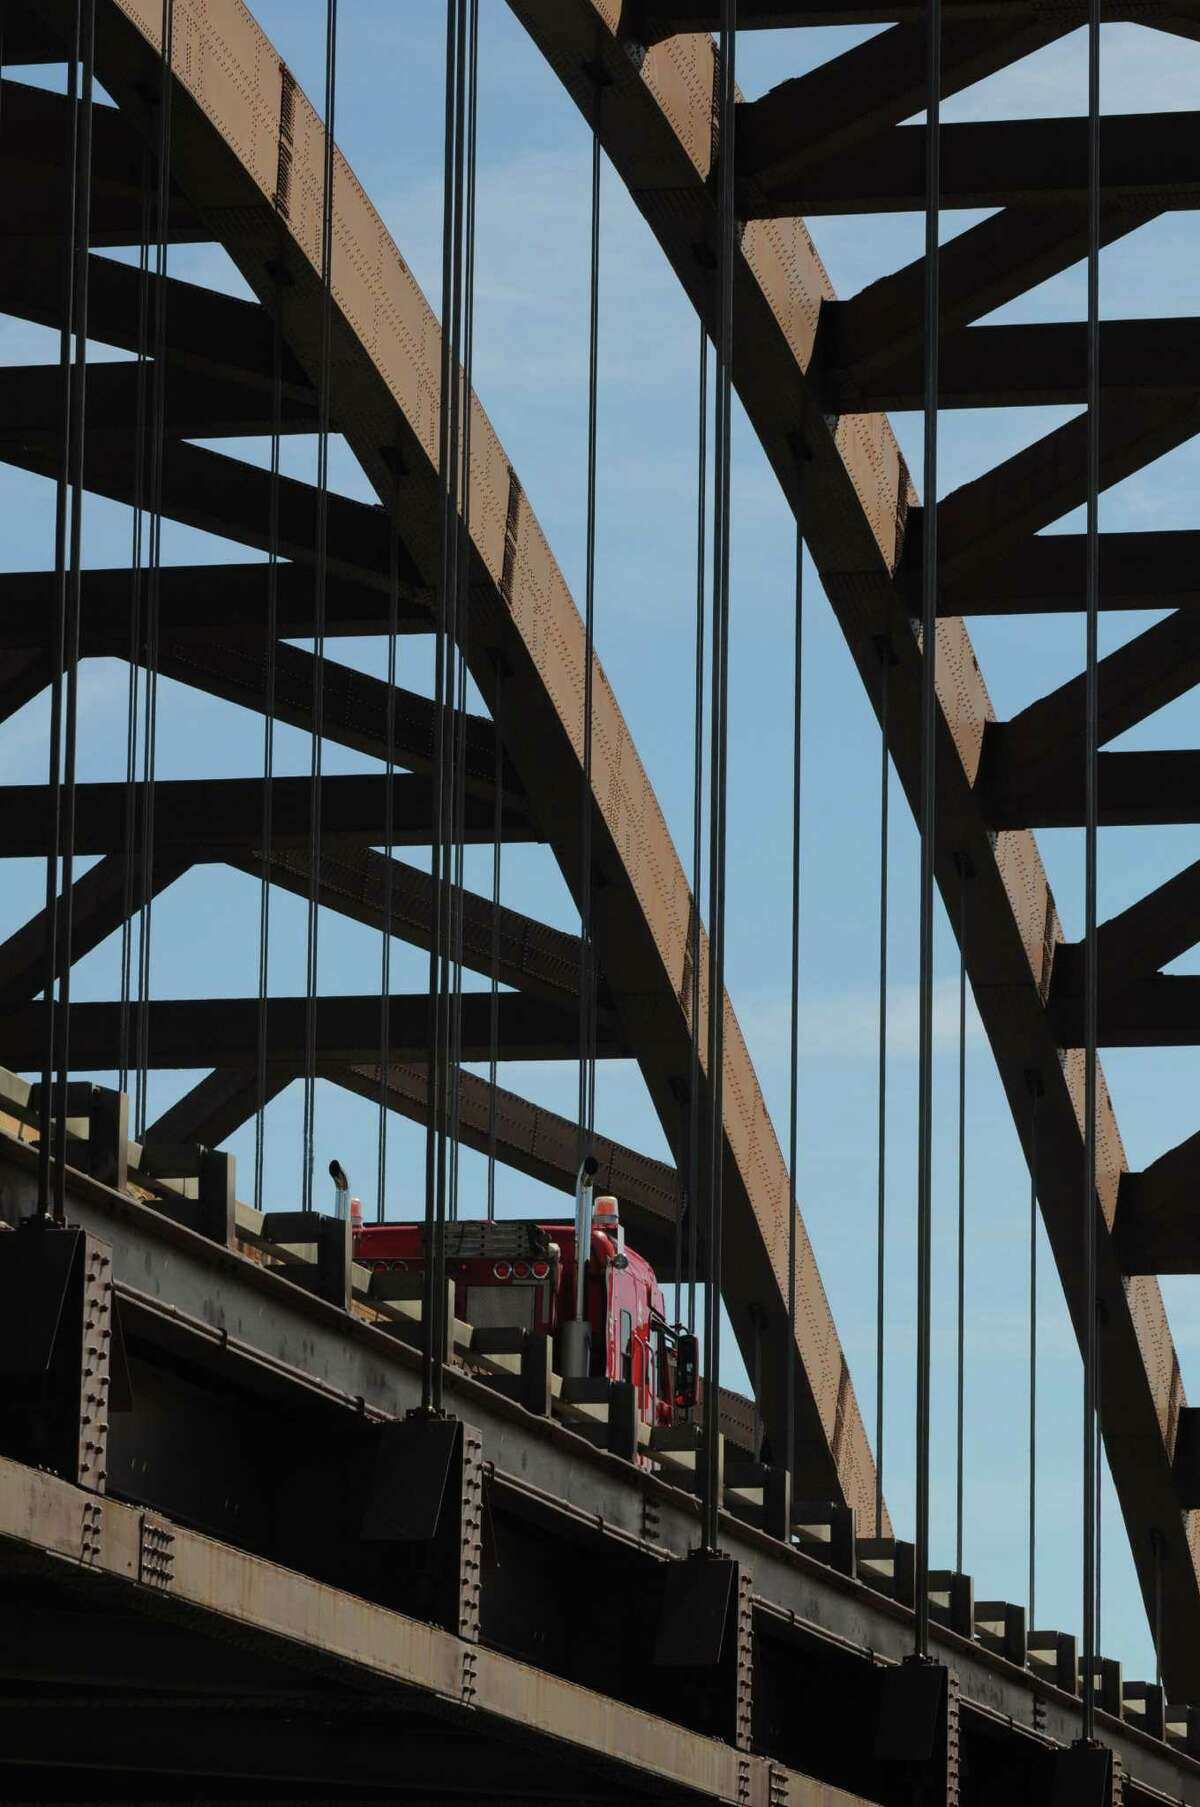 Thaddeus Kosciuszko Bridge viewed from Towpath Rd. in Halfmoon, N.Y., Tuesday Sep. 11, 2012. Roadwork on the northbound side of the Twin Bridges is scheduled to take place over the course of up to six weekends. The southbound deck will be replaced in the spring. (Will Waldron / Times Union)